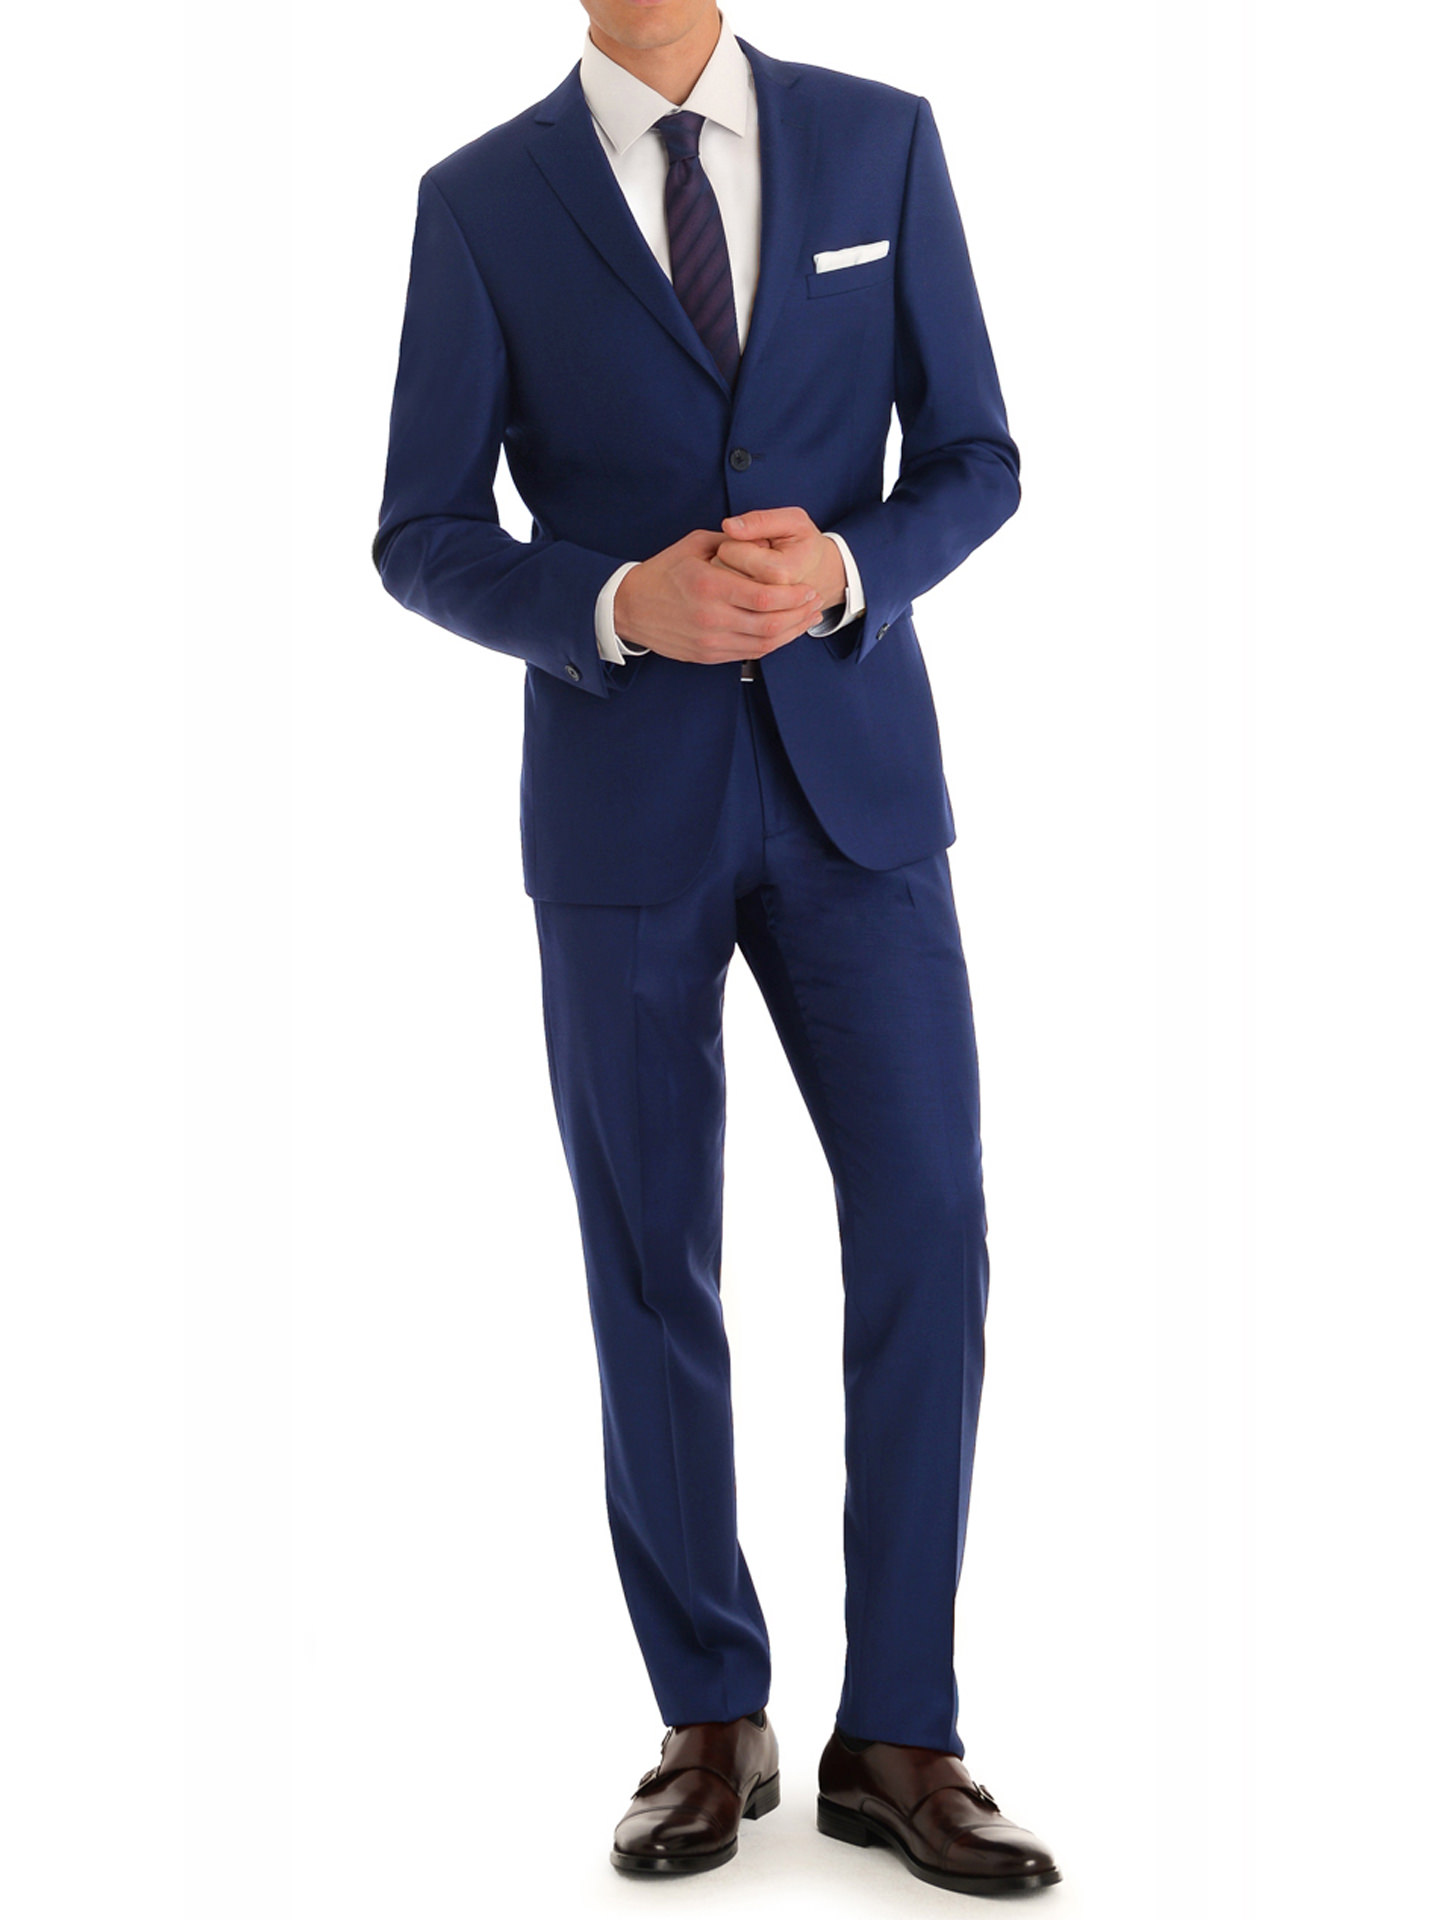 MDRN Uomo Men's Slim Fit 2PC Suits